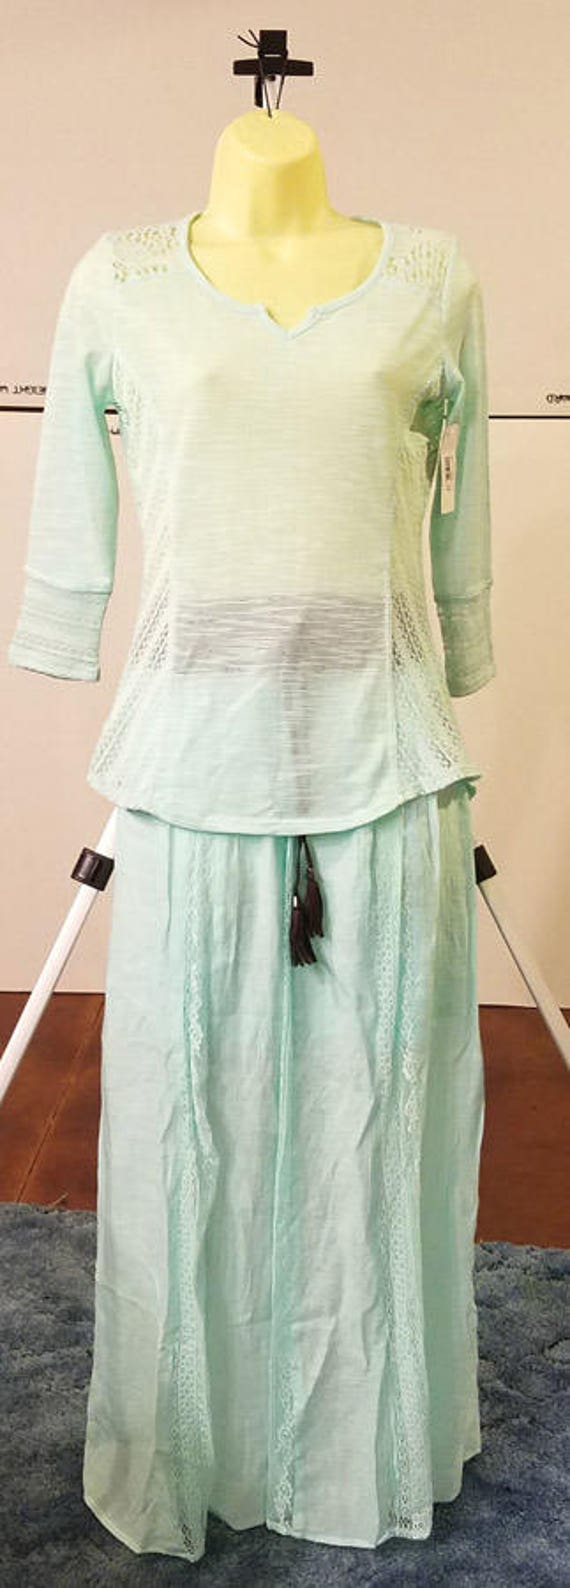 light blue lace blouse long skirt clothes lot outfit set size small MED womens NEW No Boundaries